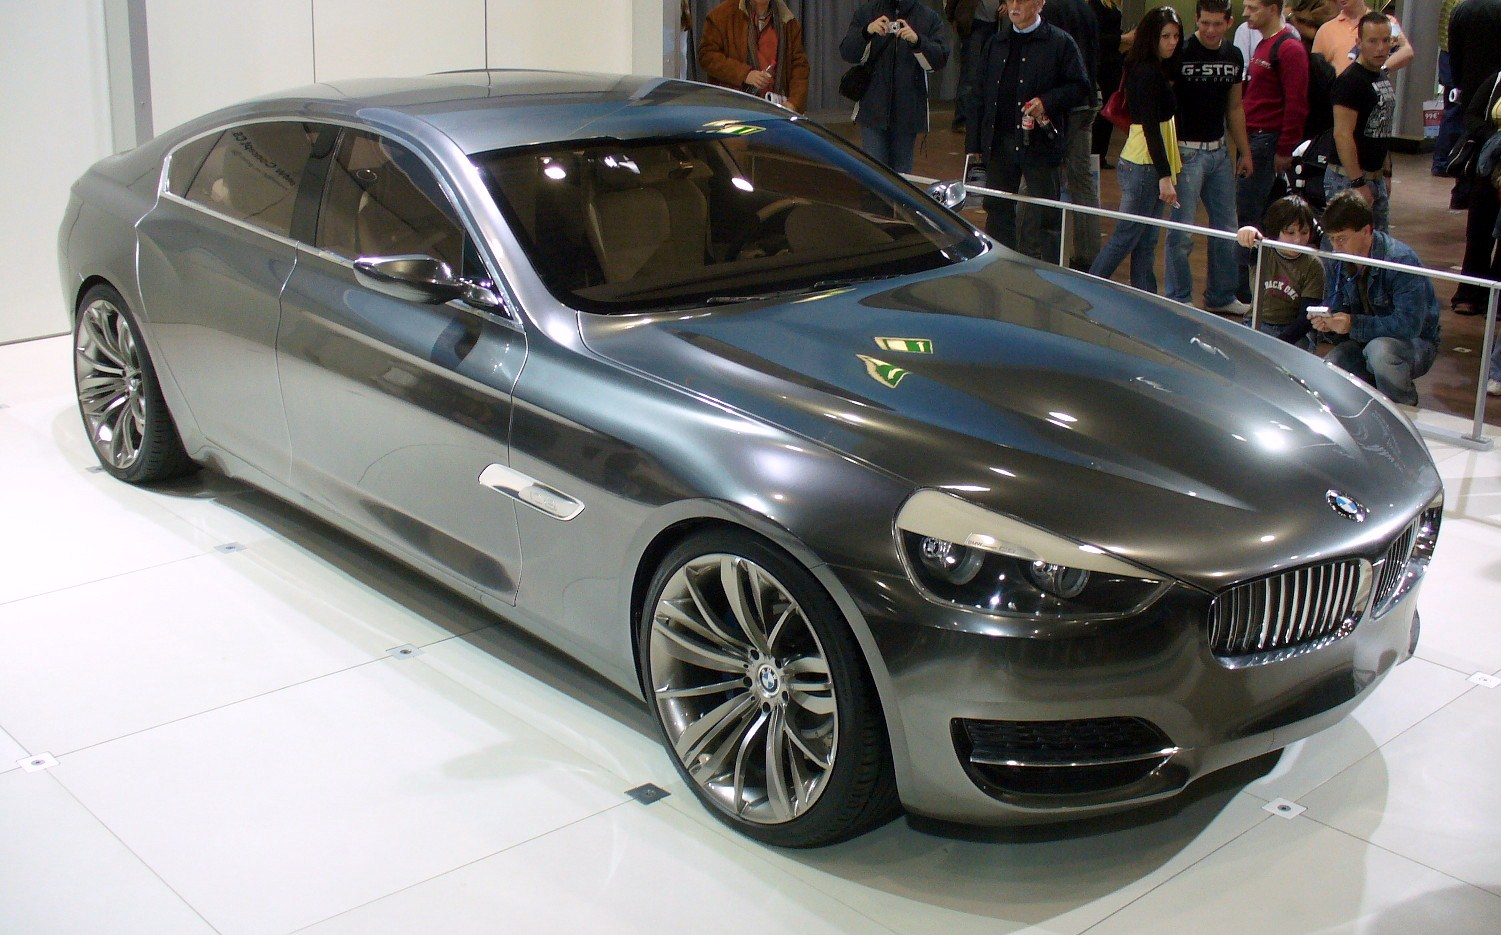 2008 BMW Concept CS - Car Pictures